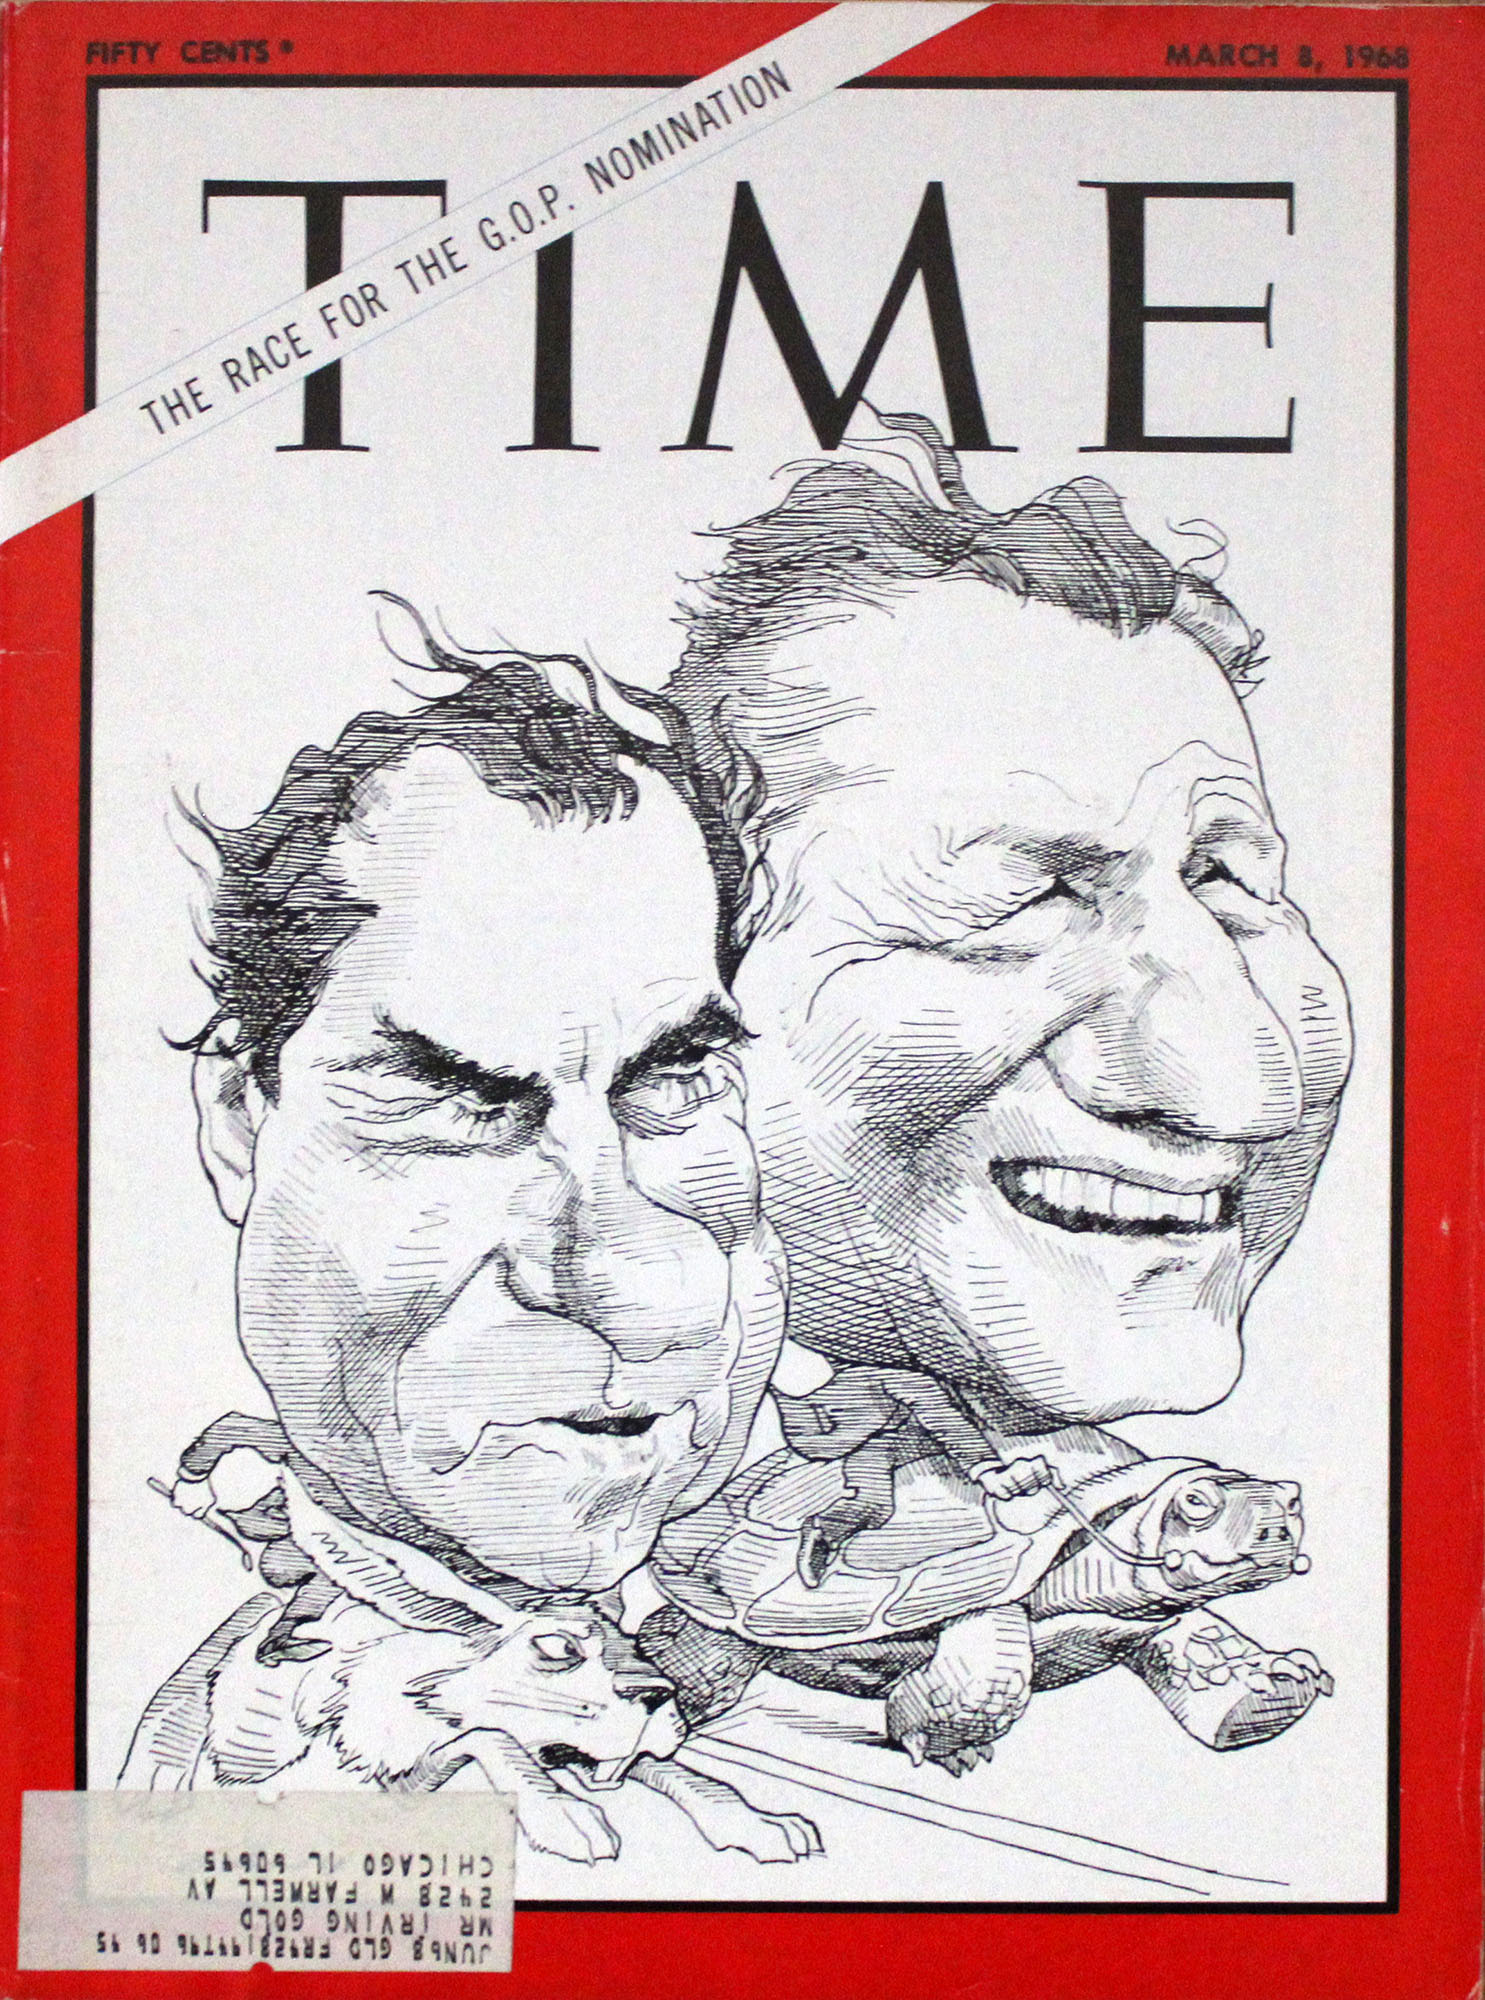 Time  Mar 8,1968